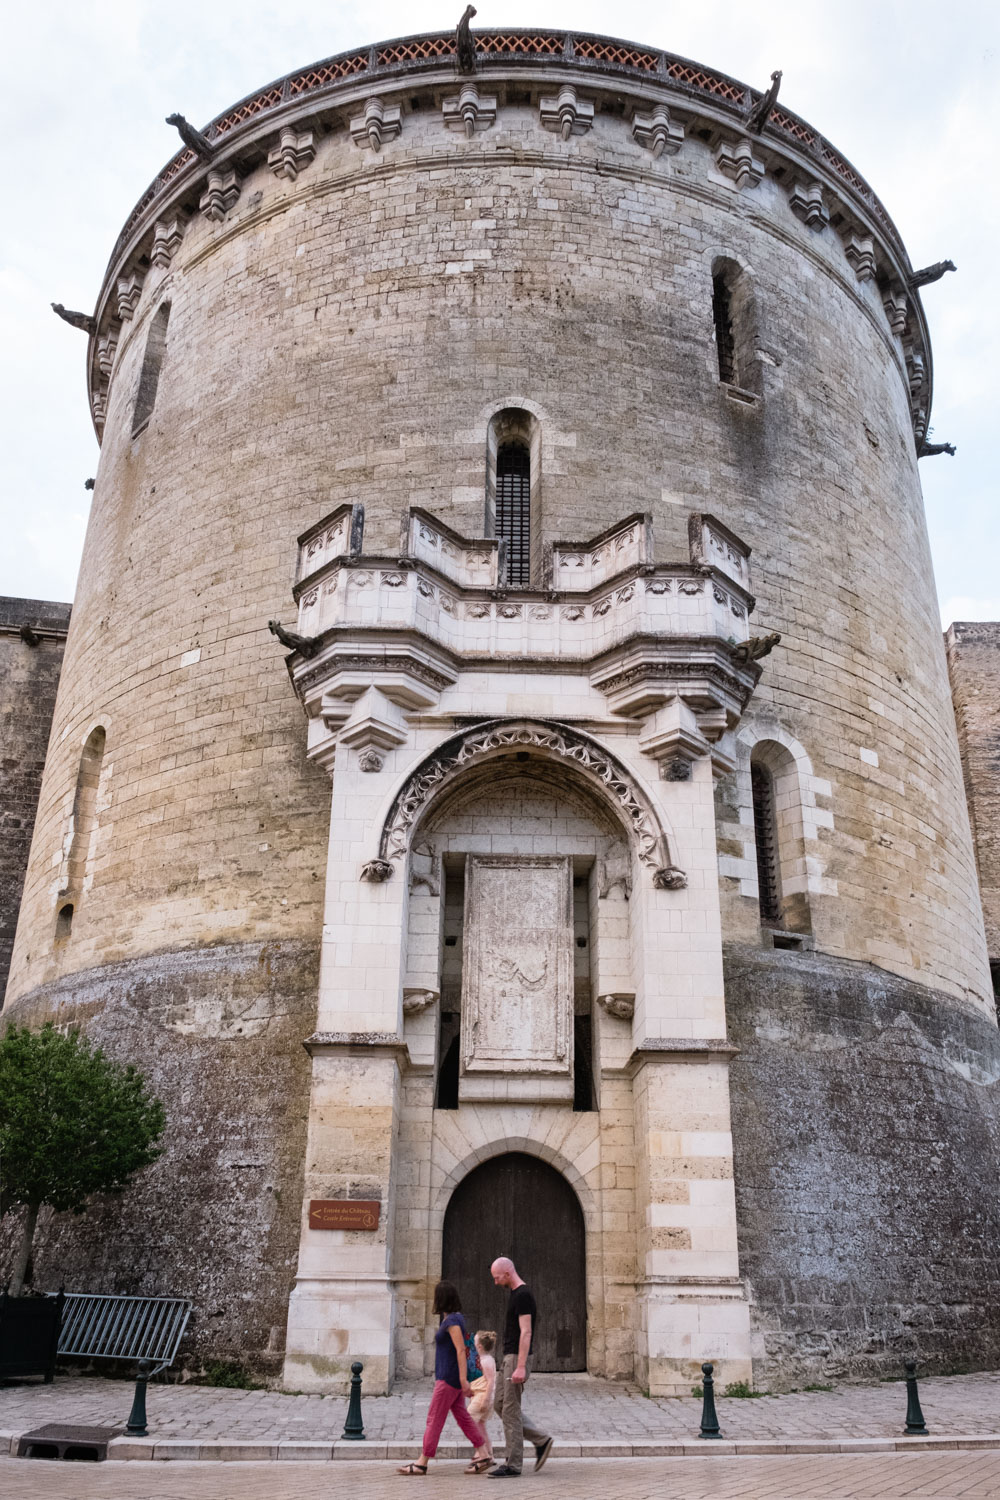 A tower of the château d'Amboise